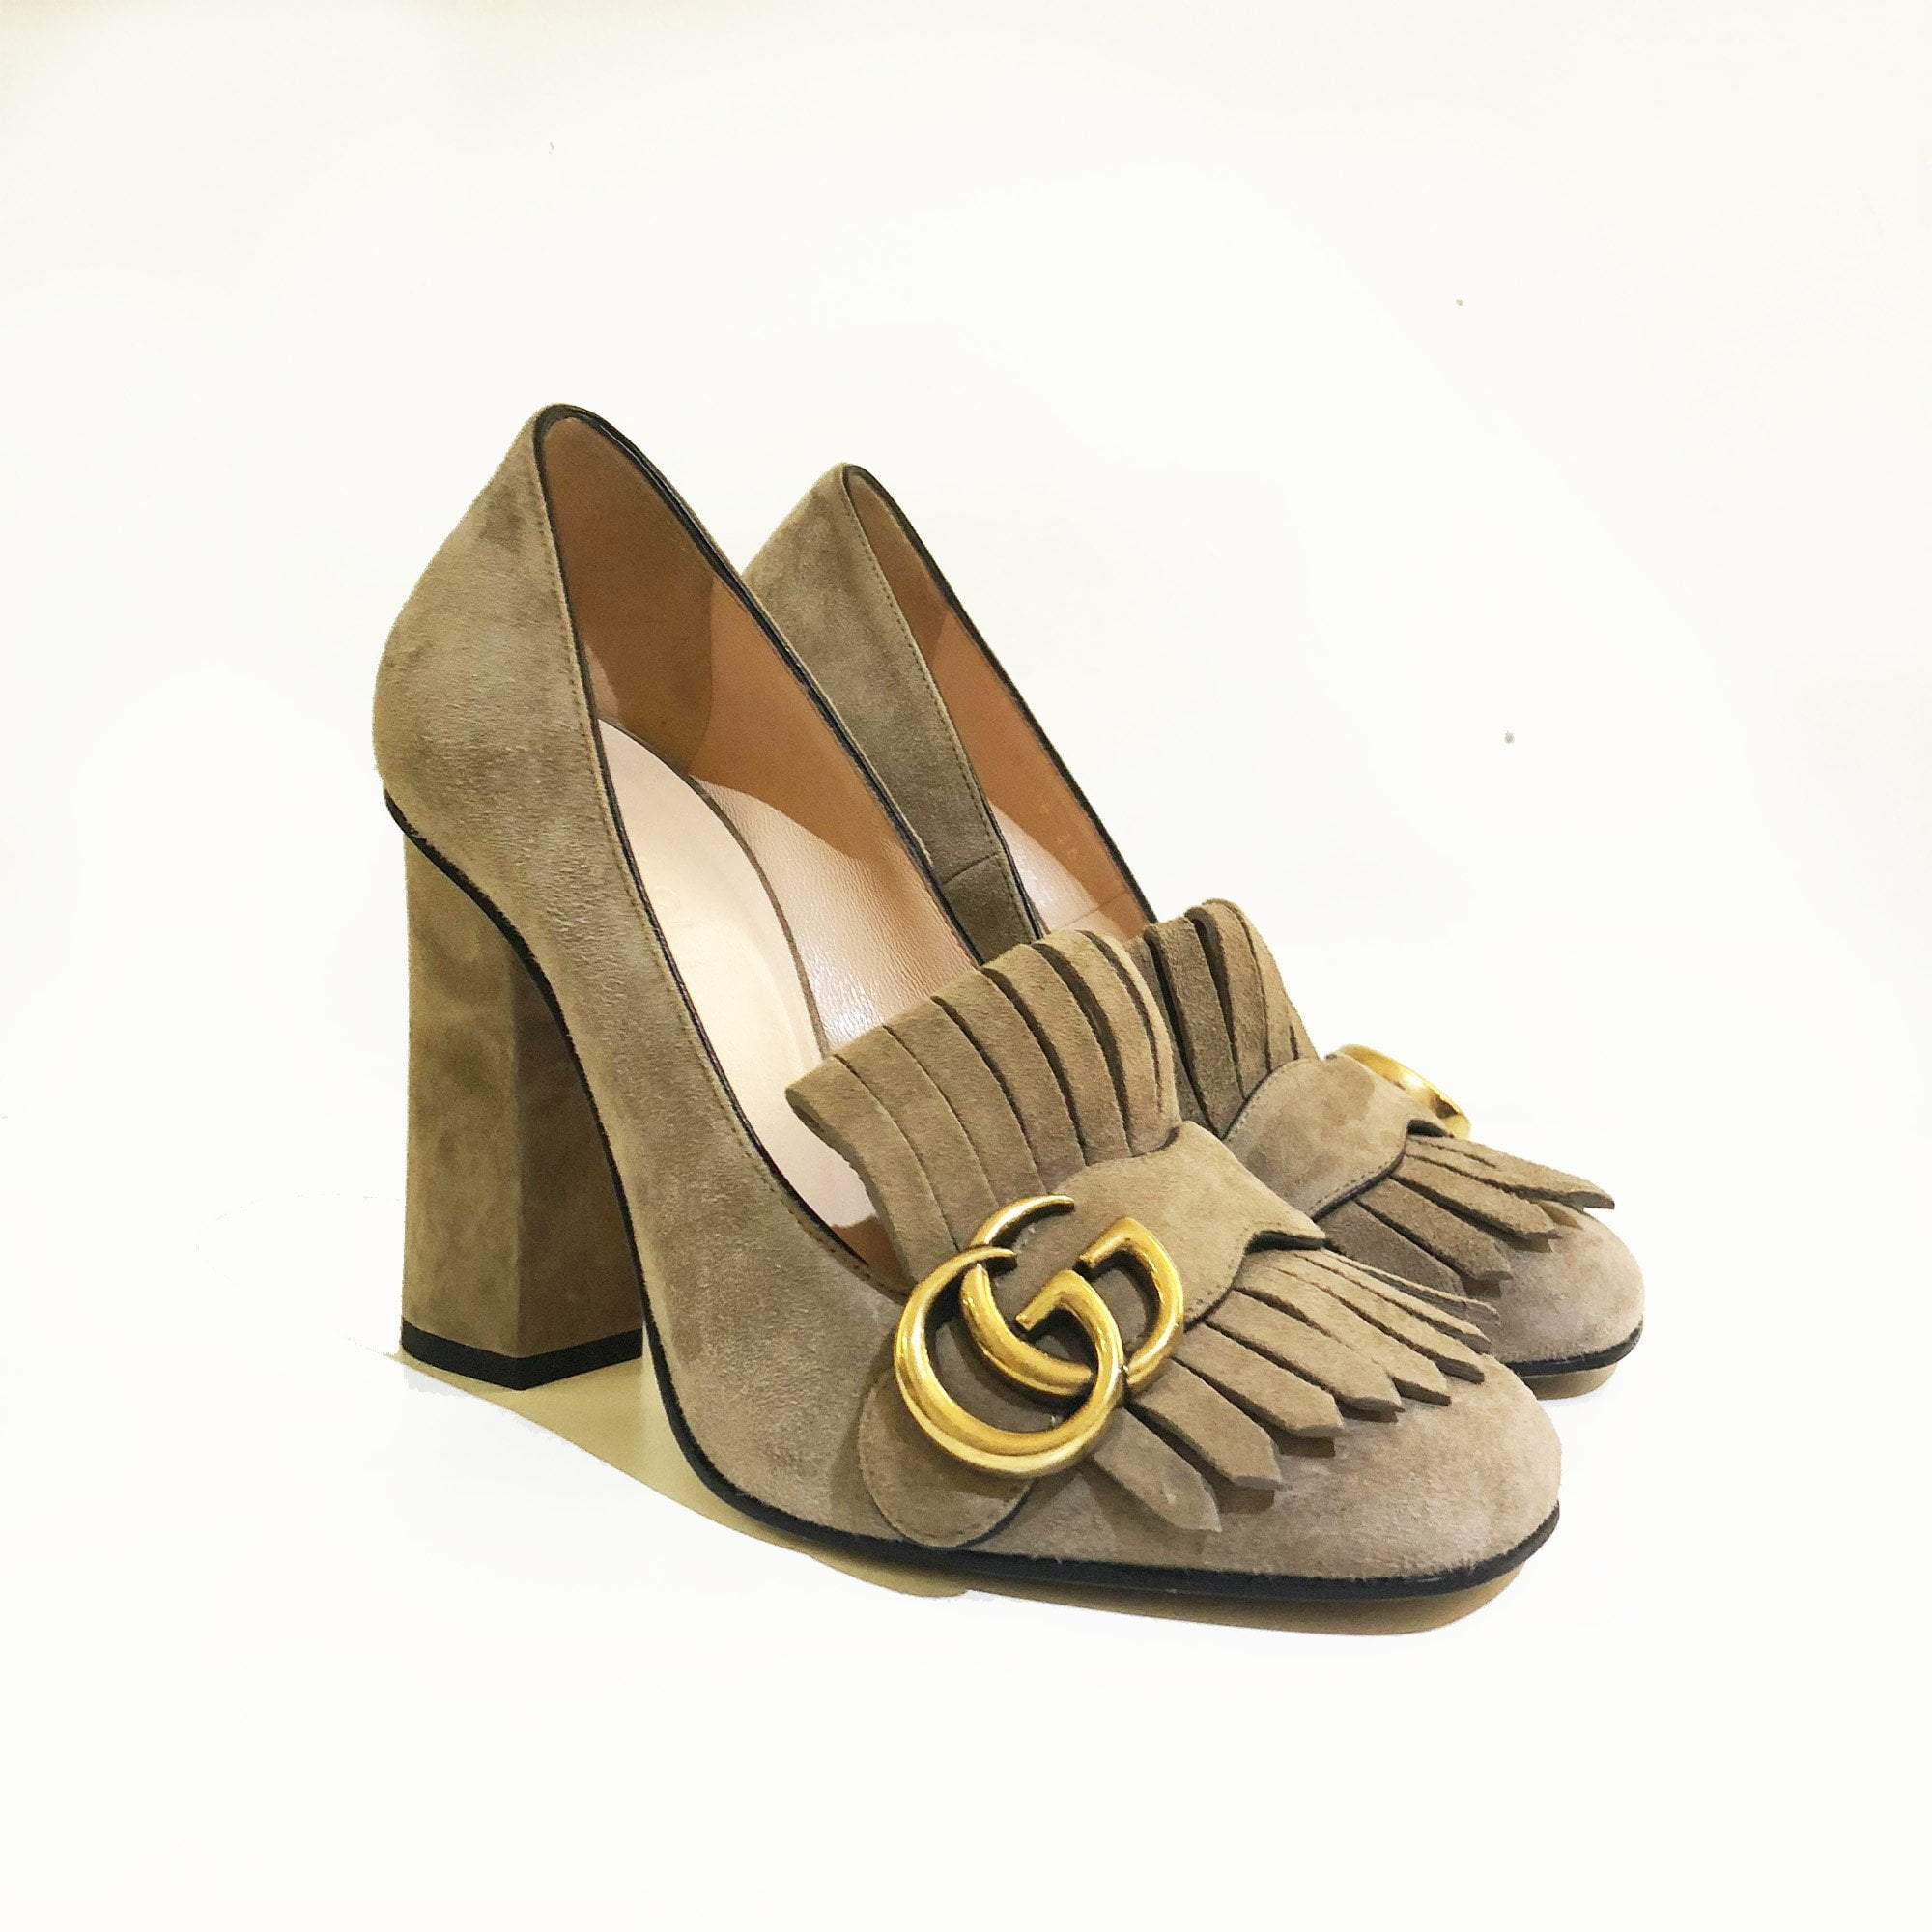 Gucci Marmont Fringe Taupe Suede Pumps